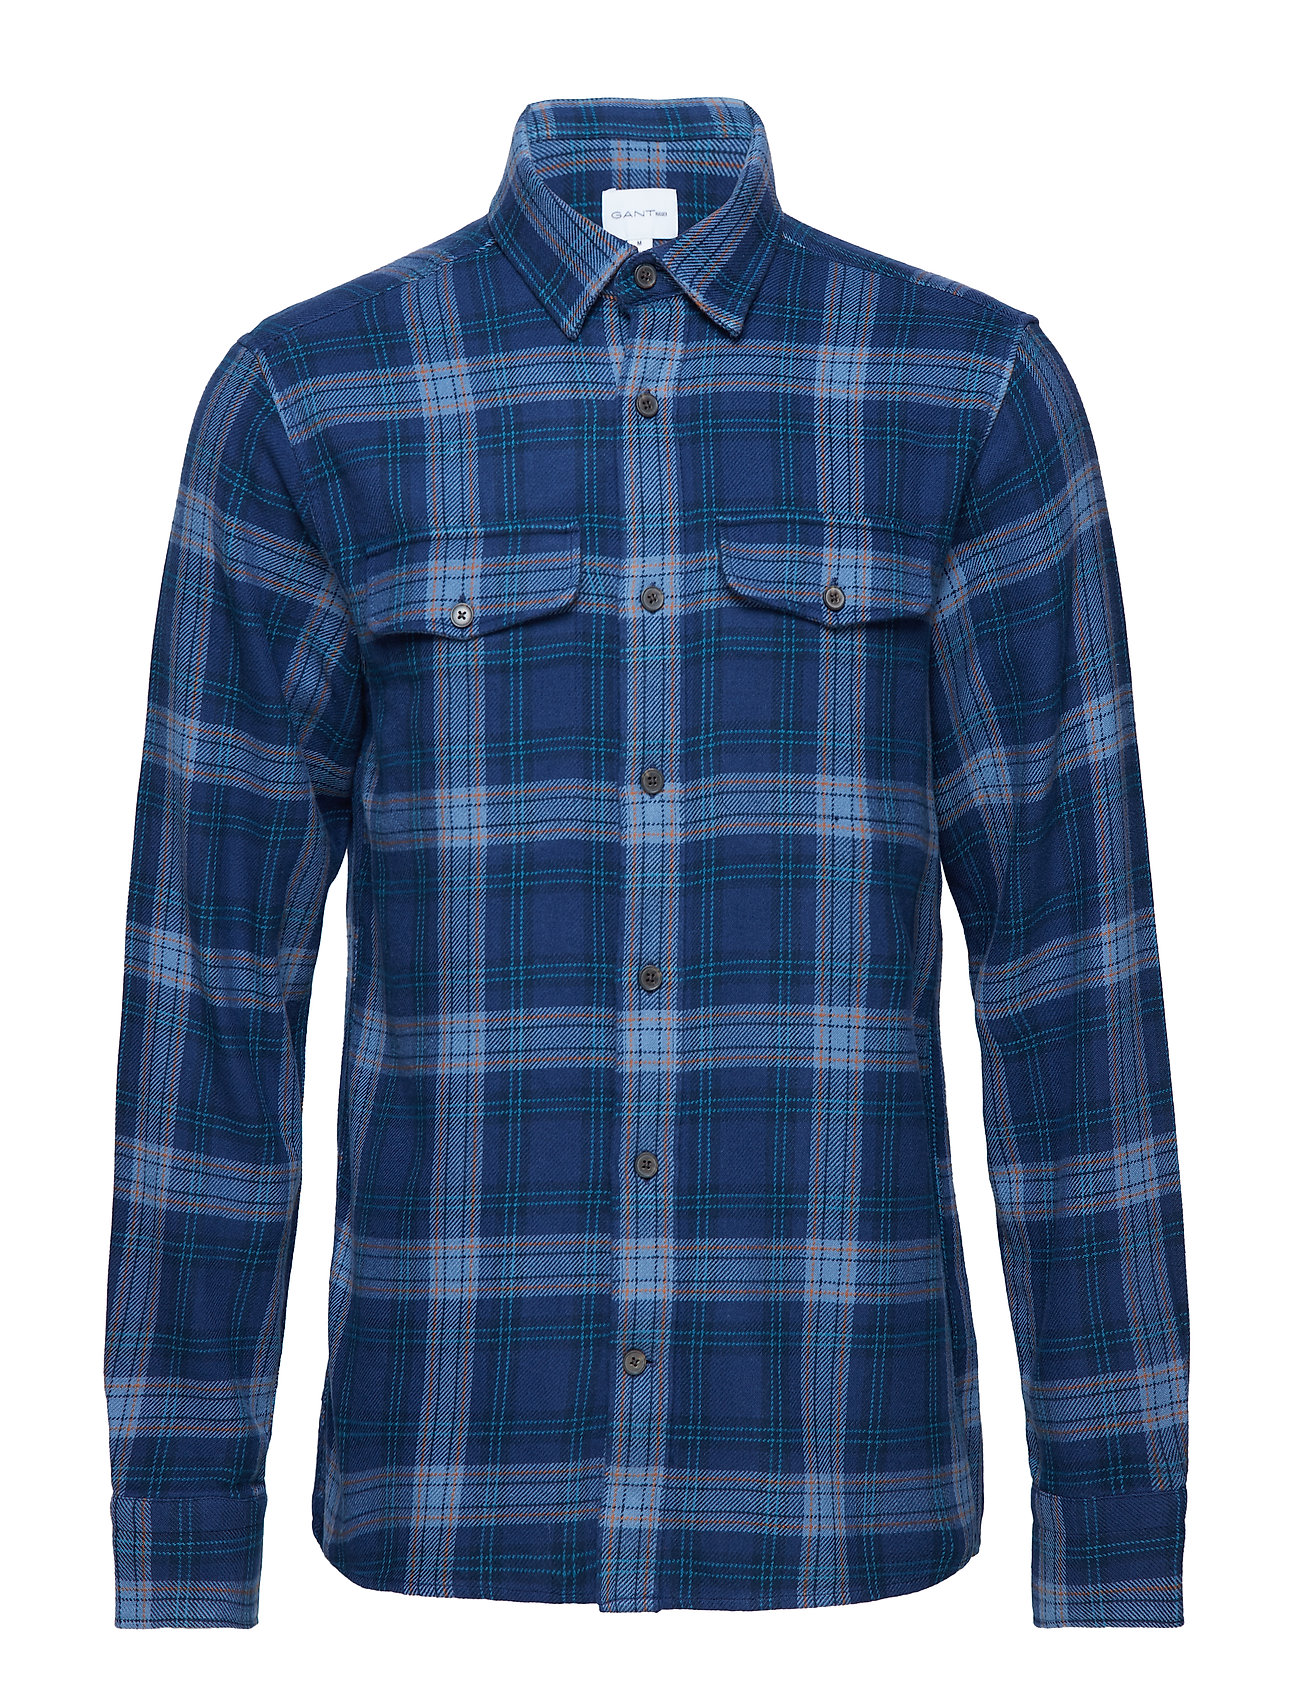 GANT Rugger R2. HEAVY TWILL SHIRT